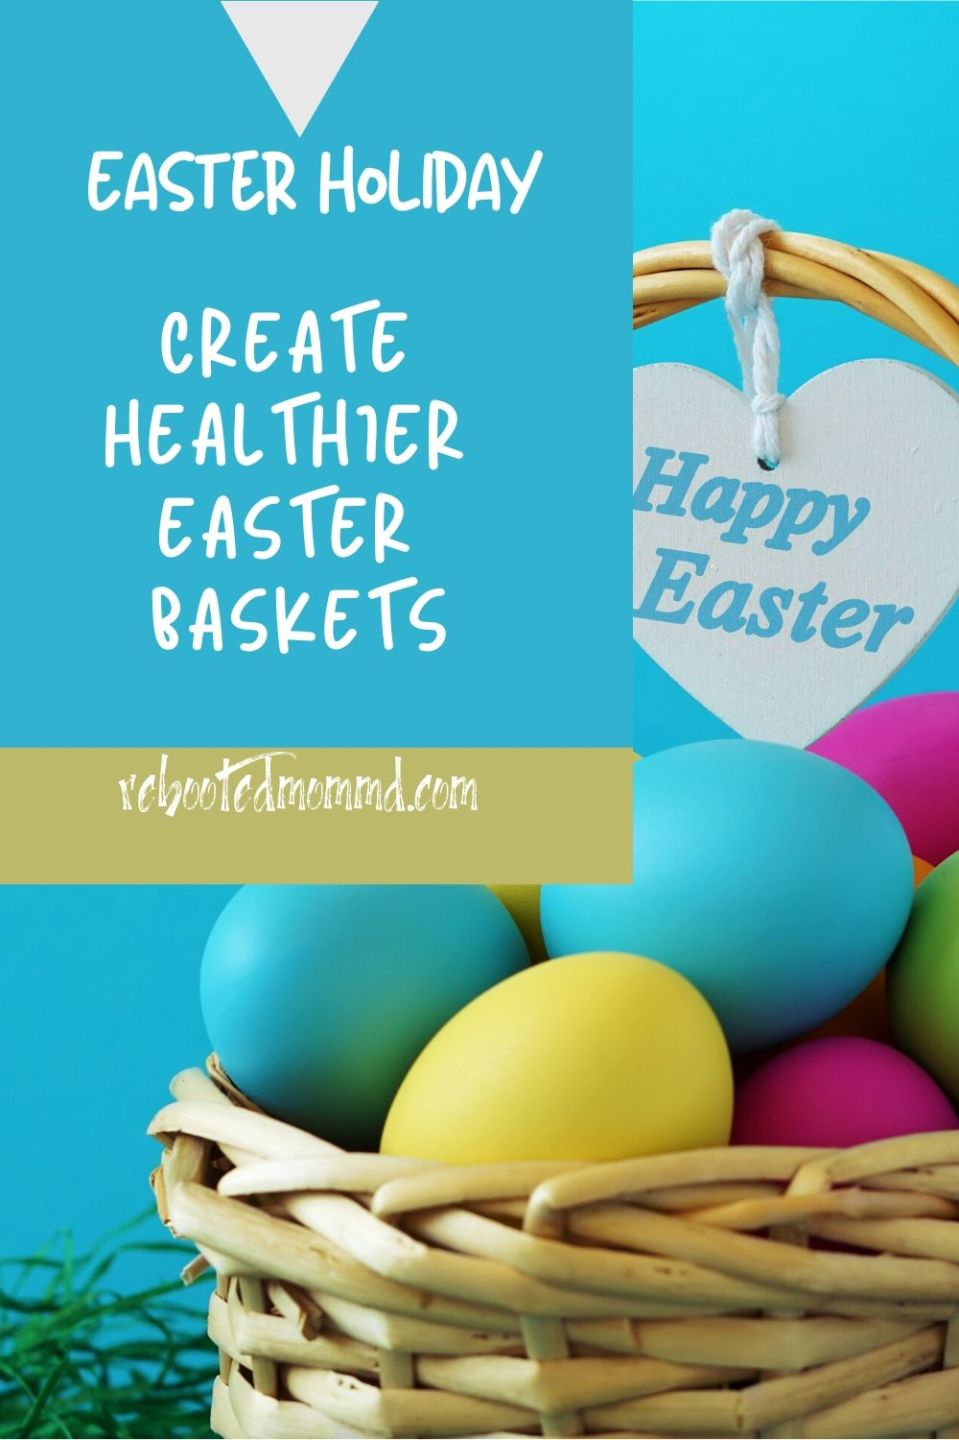 Easter Holiday: Put Some  Healthy Goodies in Easter Baskets